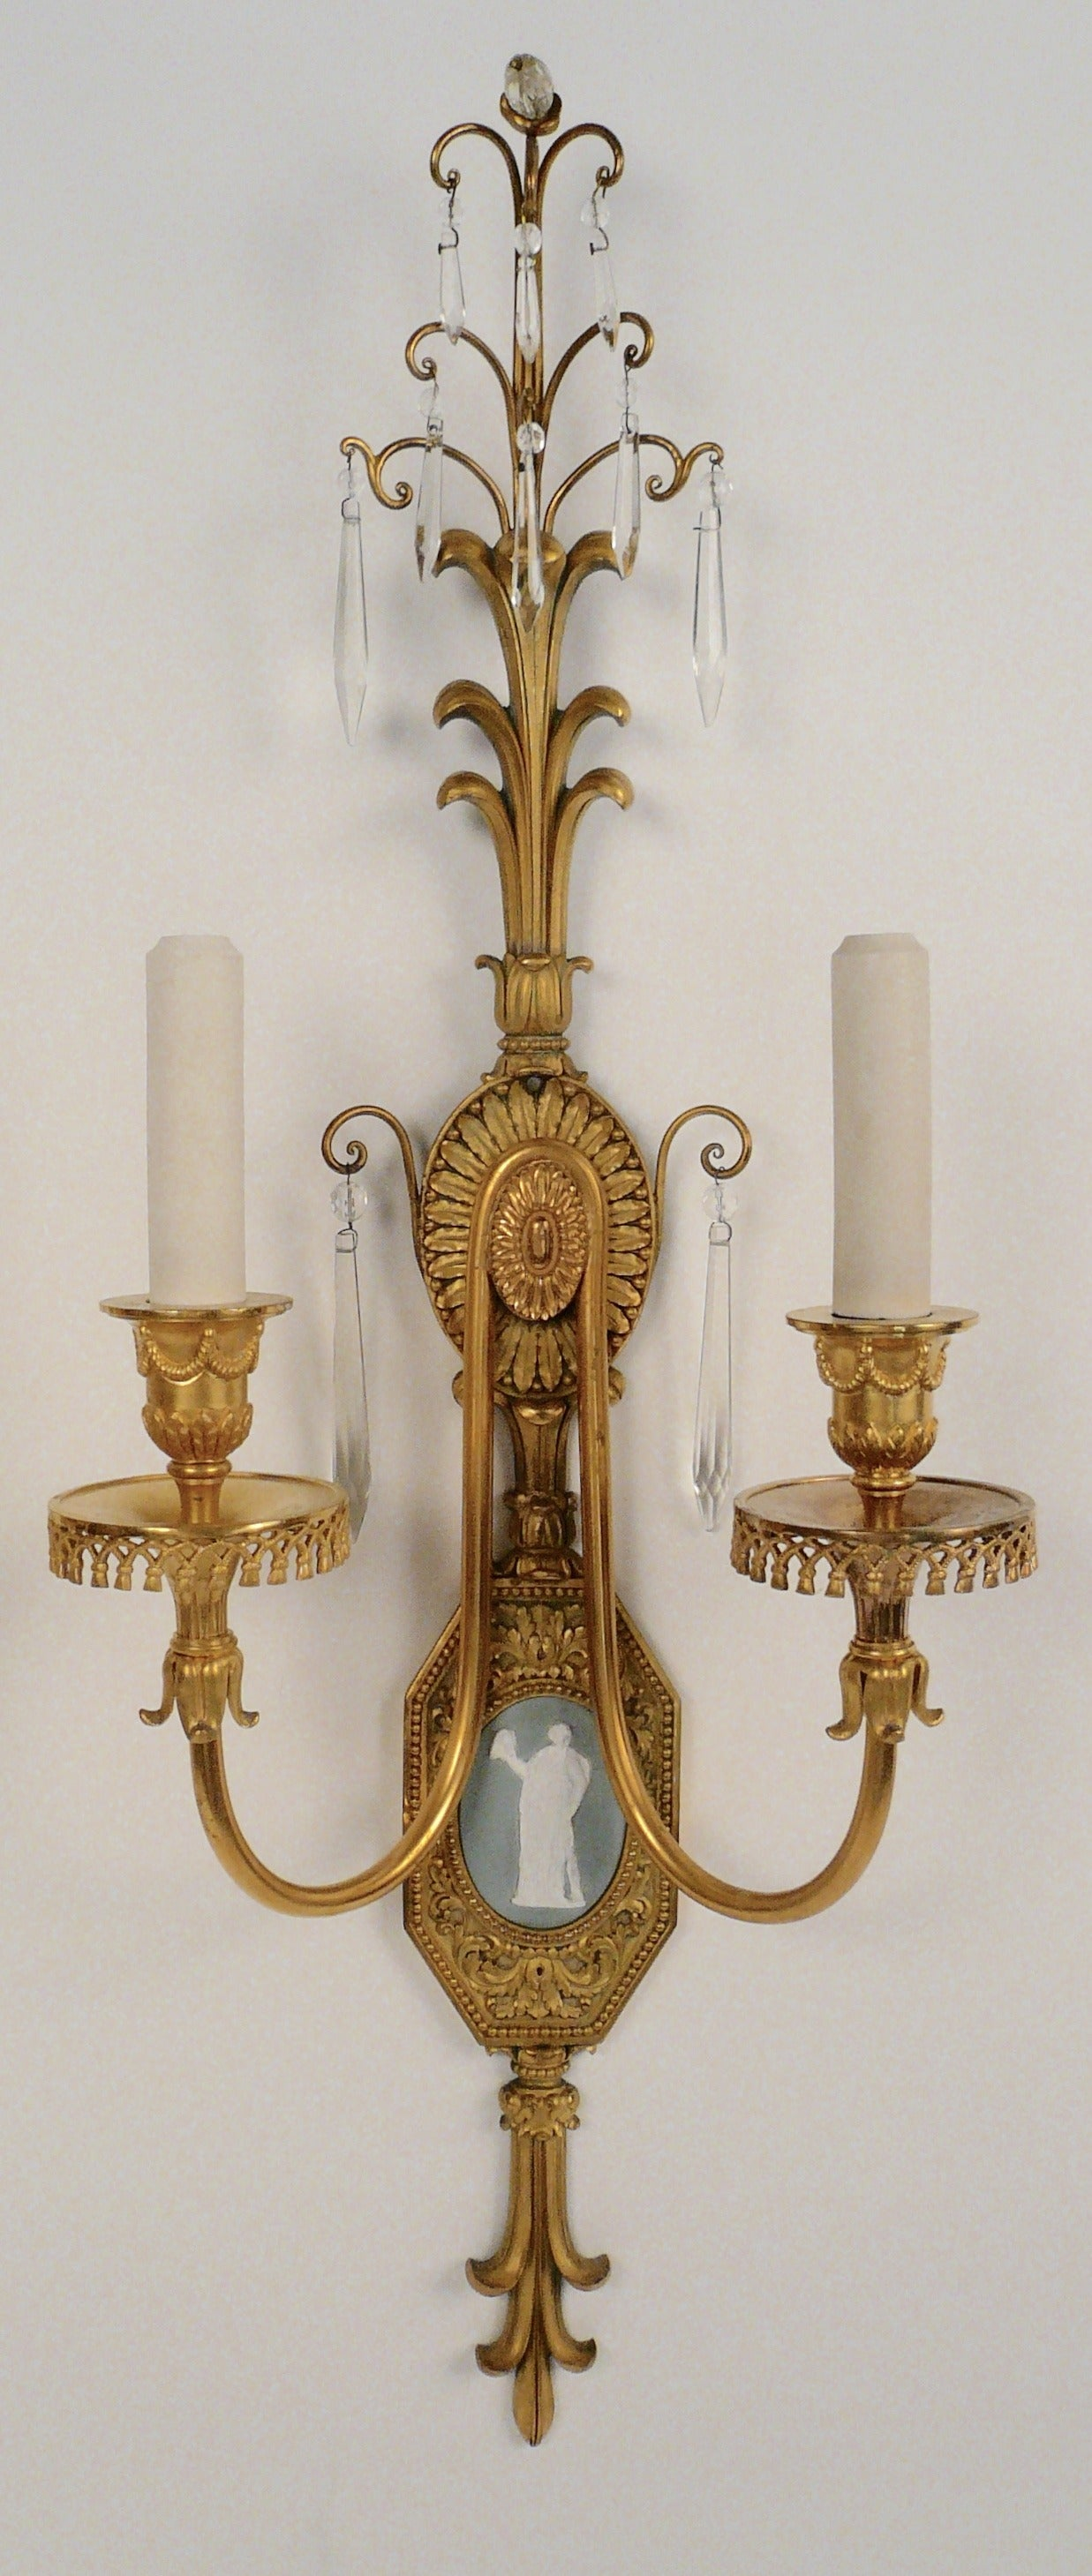 Pair of Adam Style Gilt Bronze Sconces with Enamel Plaques, by E.F. Caldwell 2